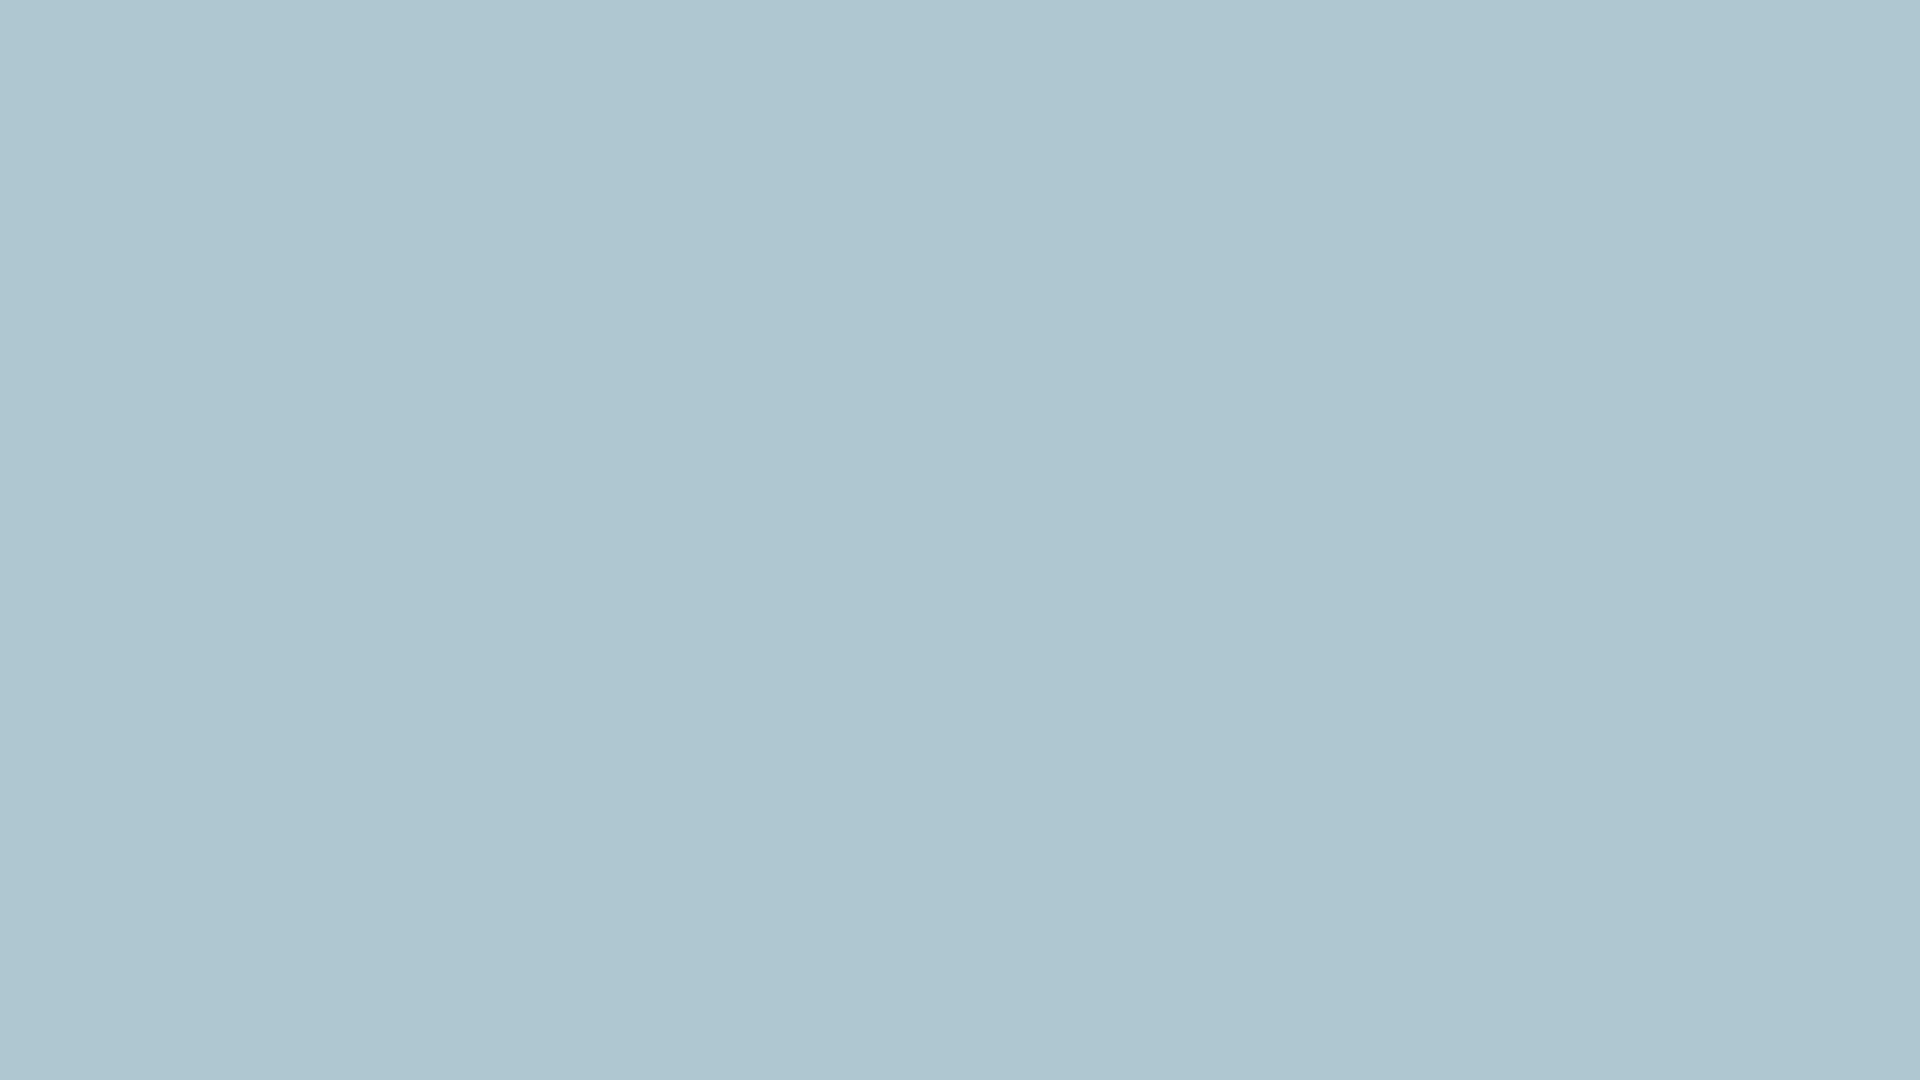 1920x1080 Pastel Blue Solid Color Background